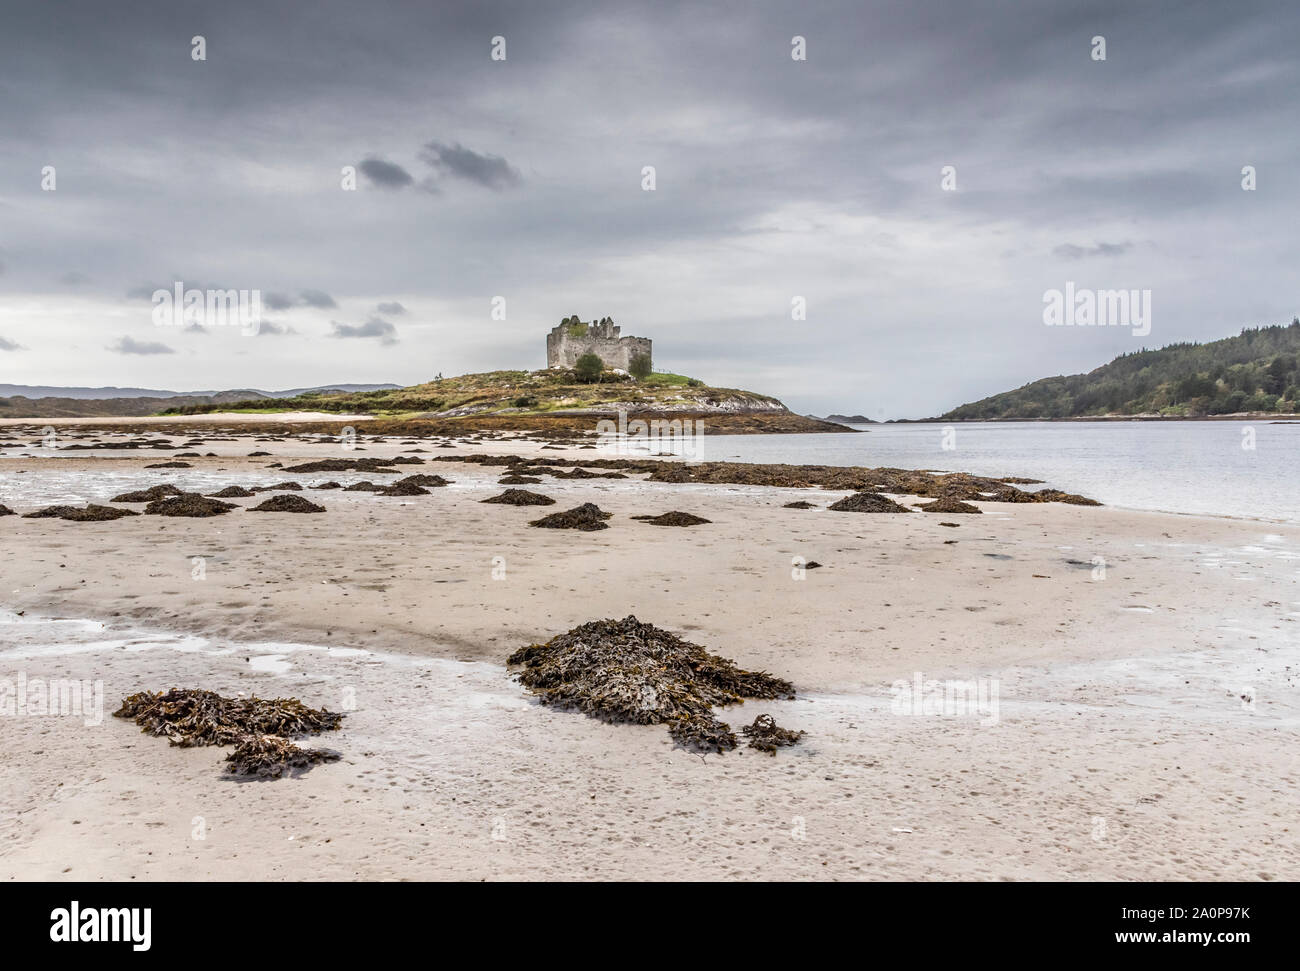 The ruins of the 13th century Eileen Tioram [The dry island] castle in the western Highland of Loch Moidart and River Shiel Stock Photo